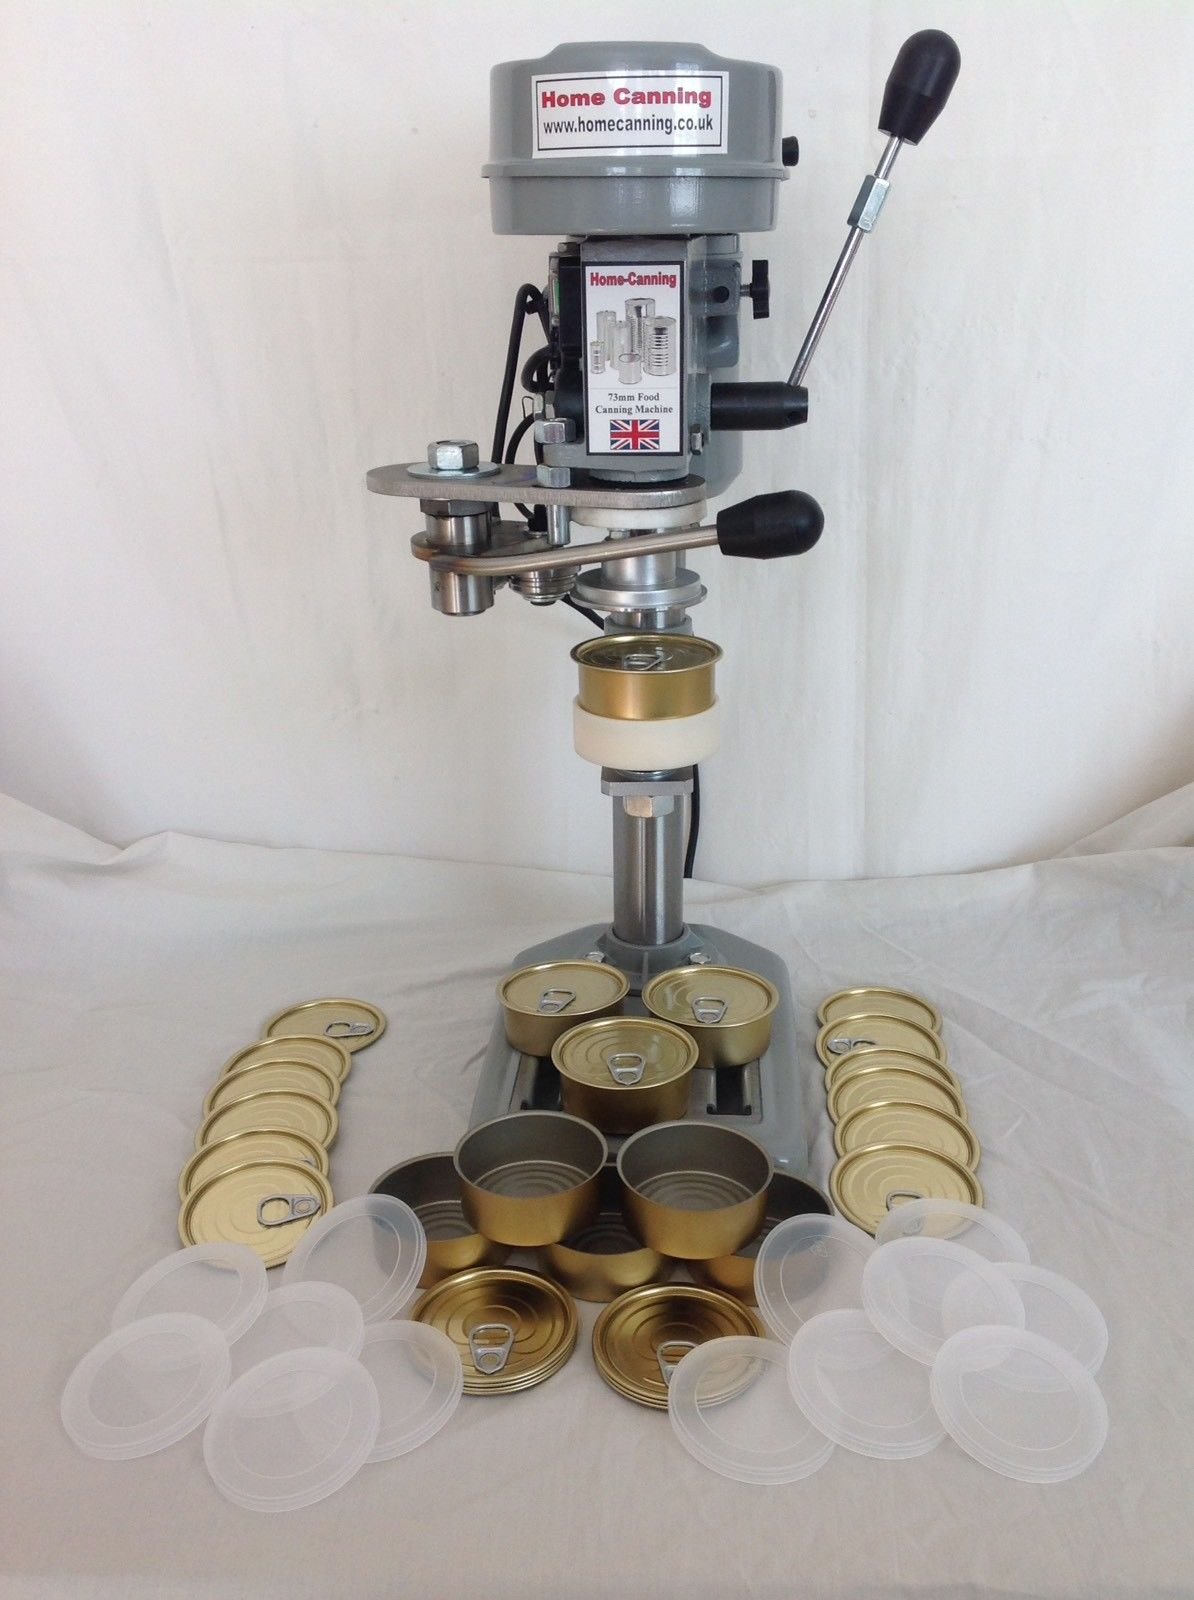 73mm Work-Top Electric Home Canning Machine + 300 cans 28mm + lids